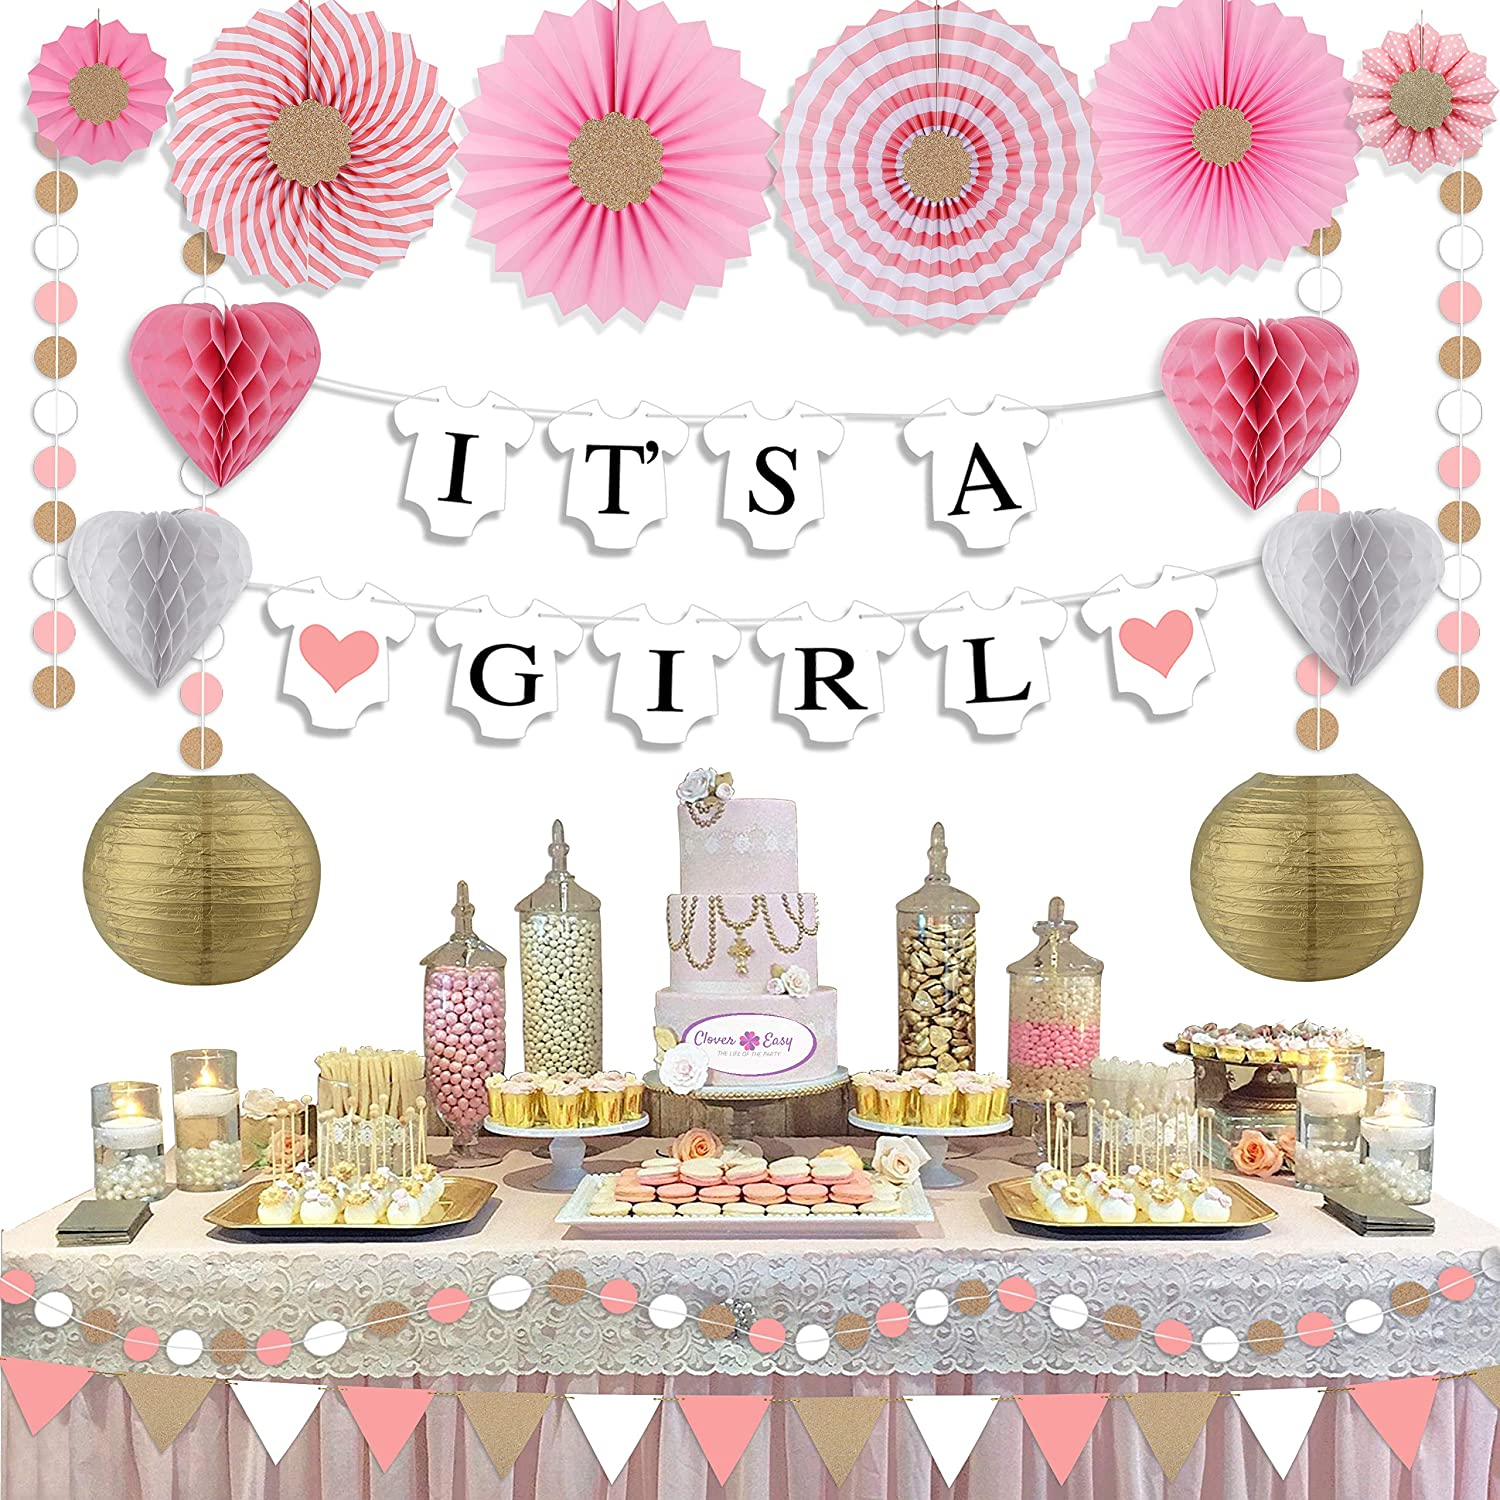 Clover Easy Baby Shower Decorations for Girl - with Its a Girl Banner /  Baby Shower Garland / Paper Fans Decorations / Party Paper Lanterns / Baby